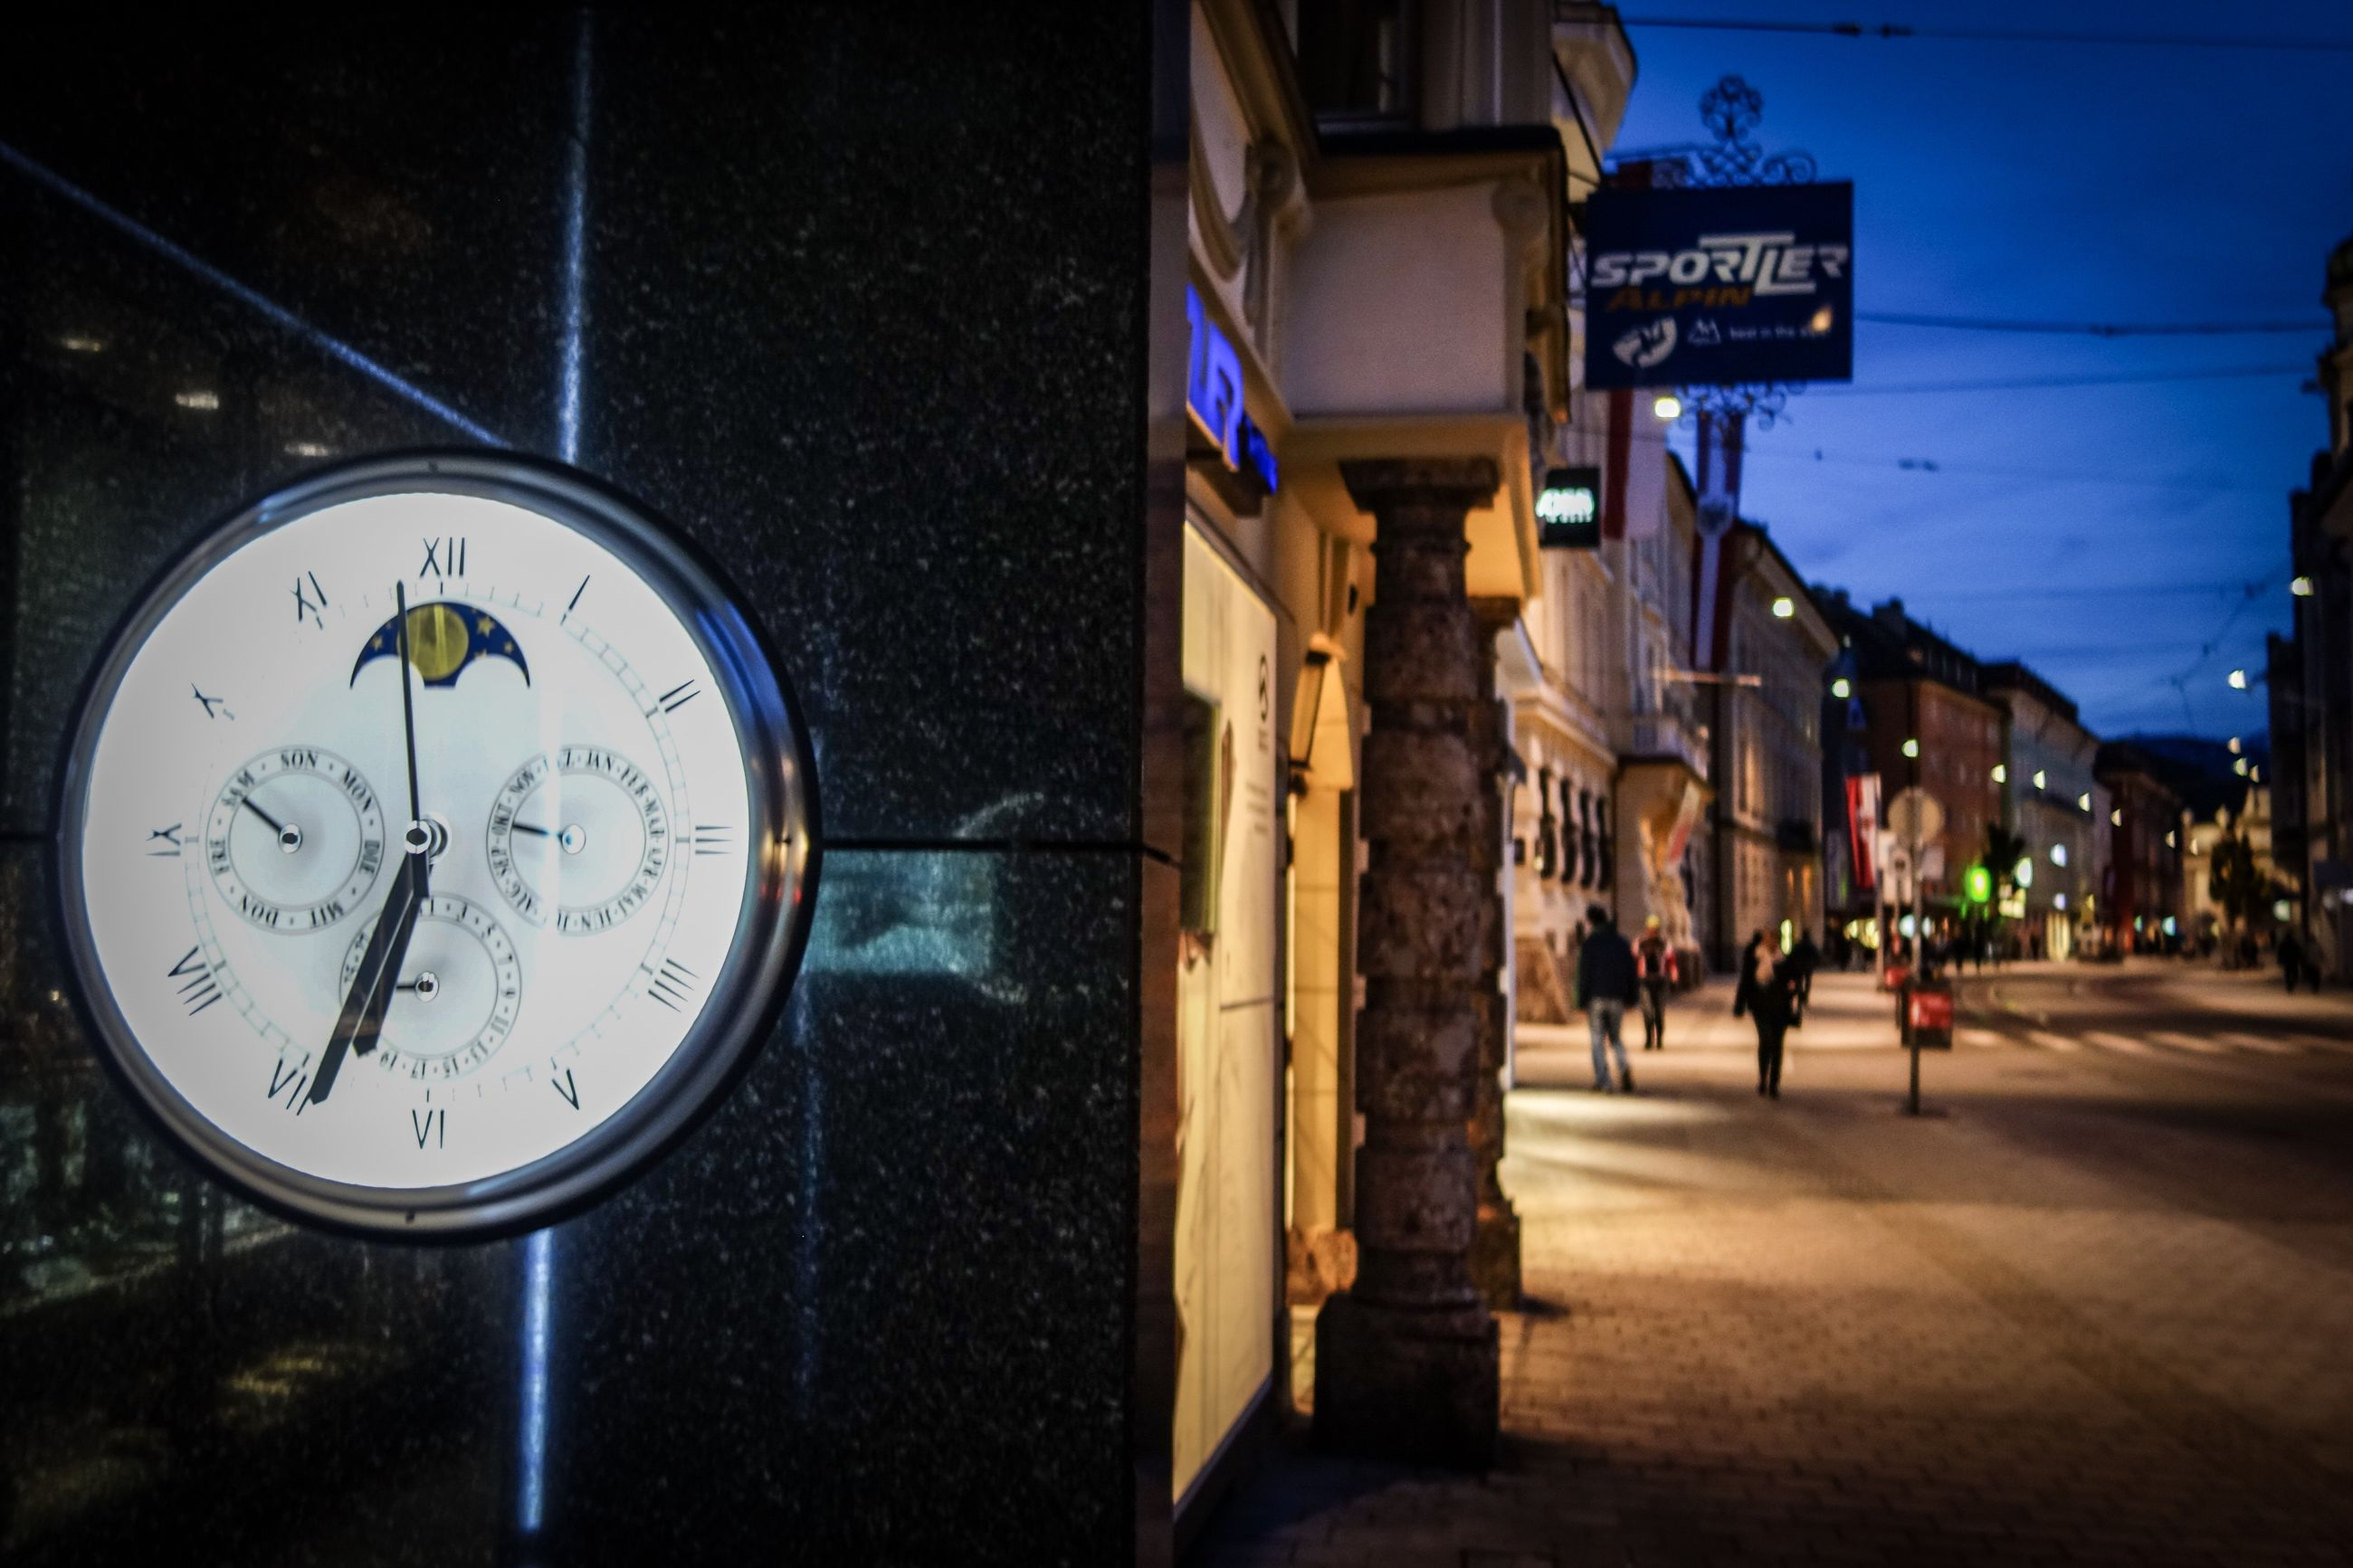 time, architecture, illuminated, clock, communication, built structure, city, building exterior, night, text, sign, street, number, information, footpath, information sign, outdoors, transportation, focus on foreground, direction, clock face